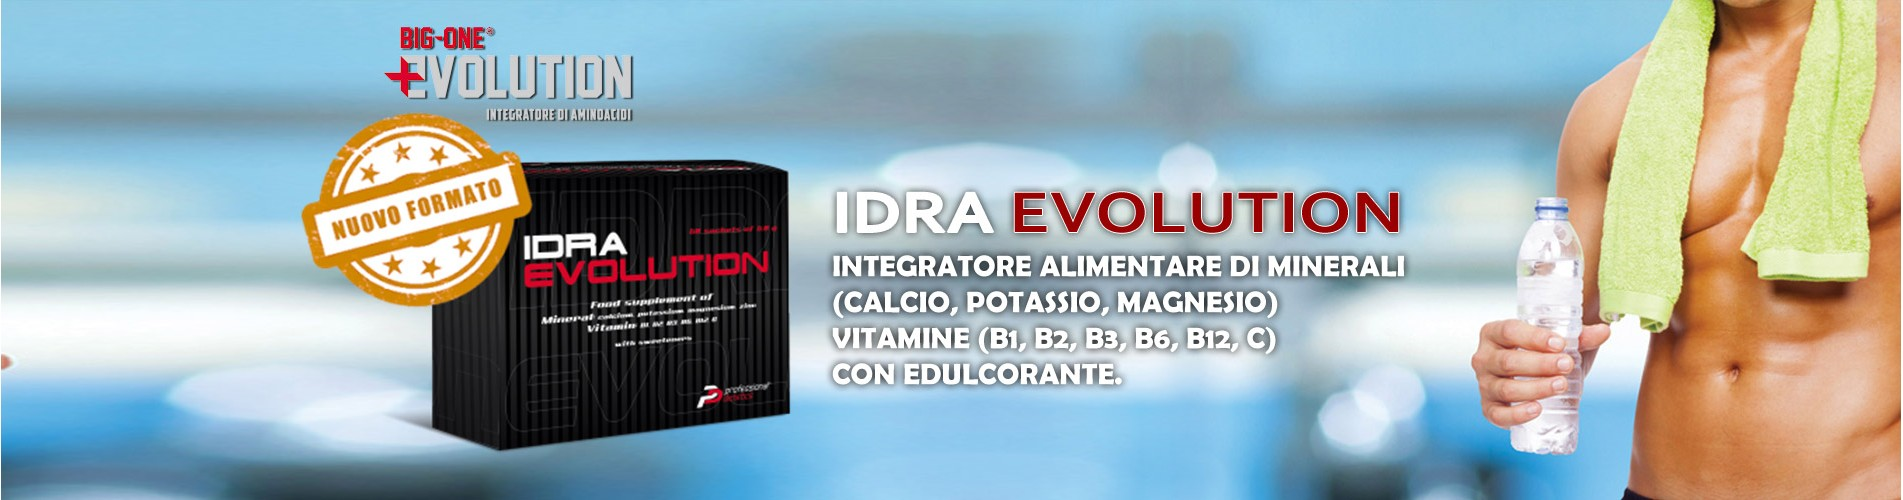 IDRA EVOLUTION